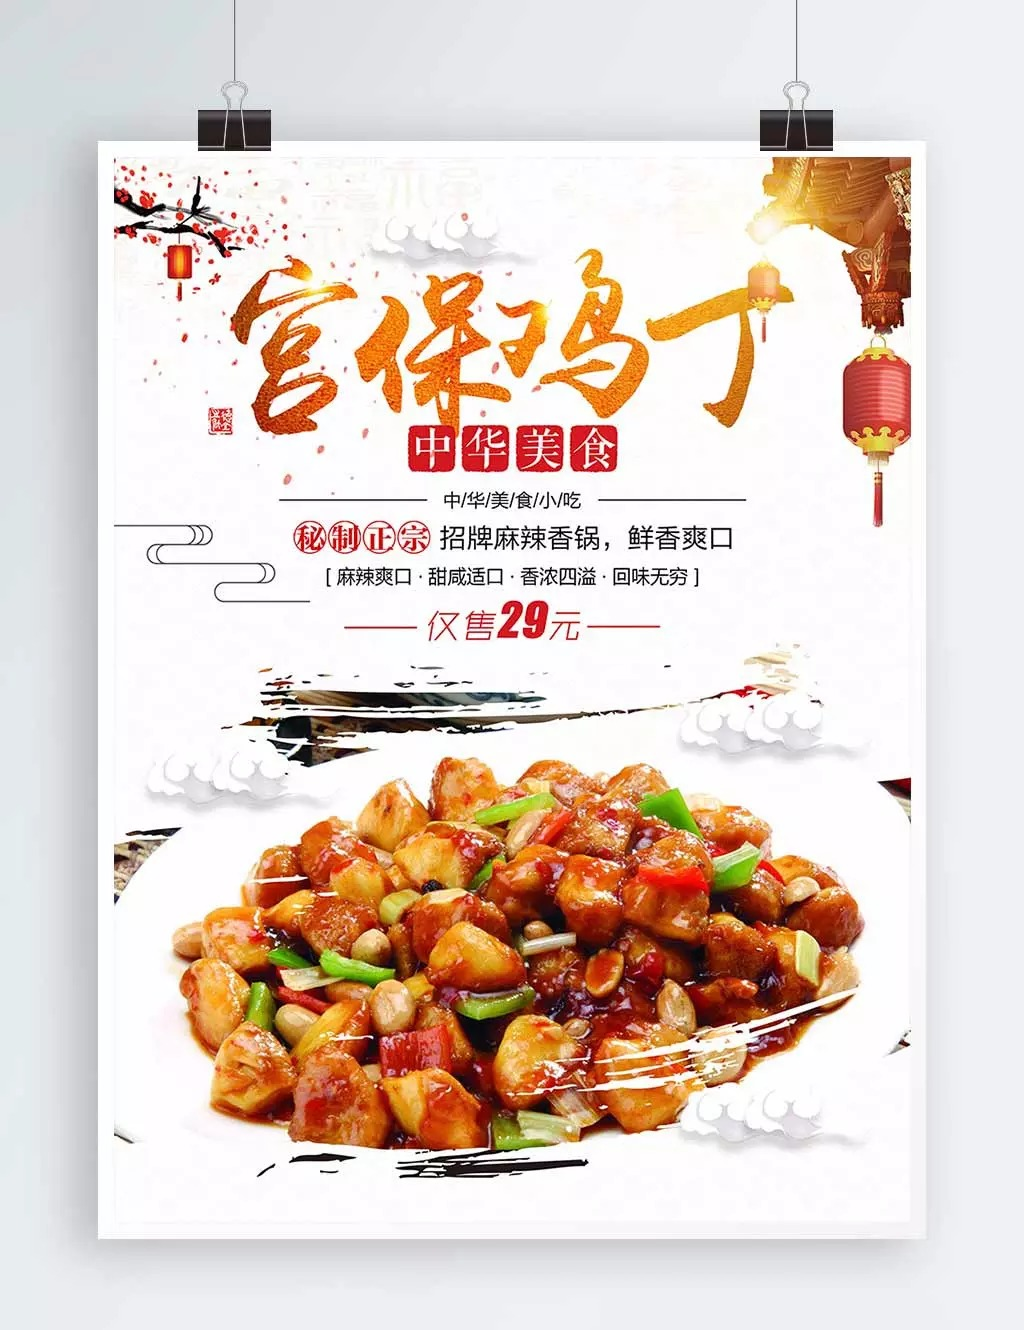 Kung pao asian diner